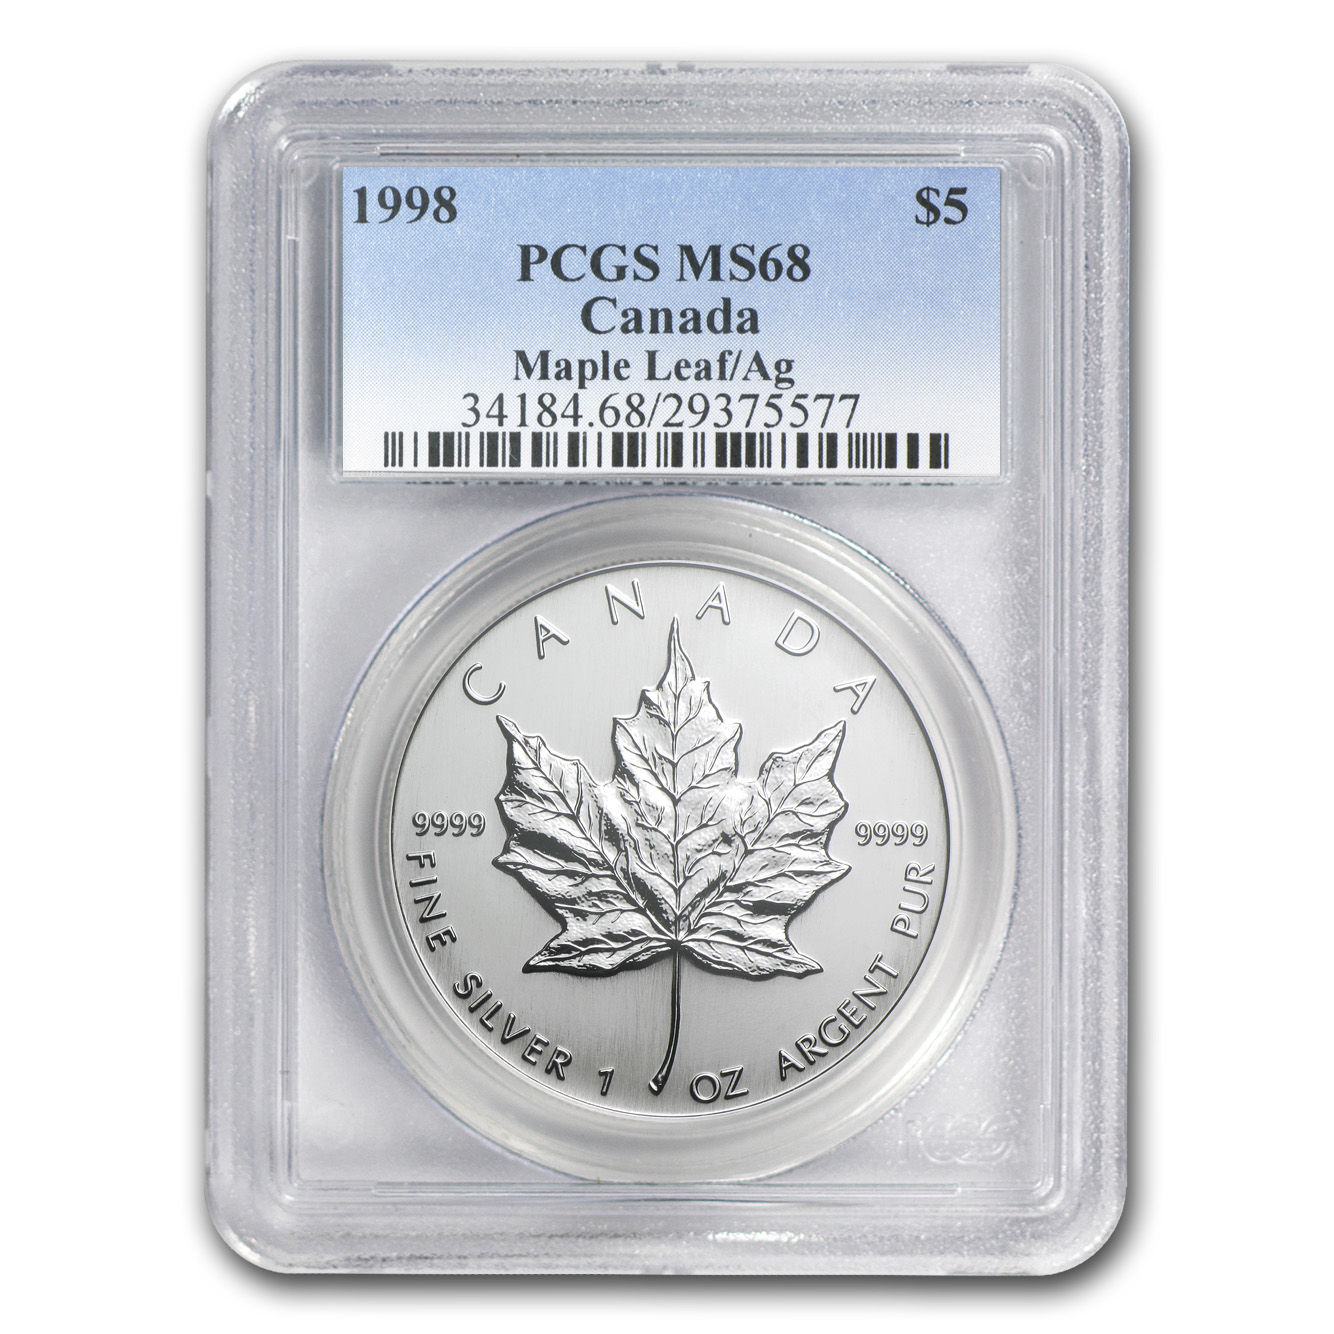 1998 1 oz Silver Canadian Maple Leaf MS-68 PCGS